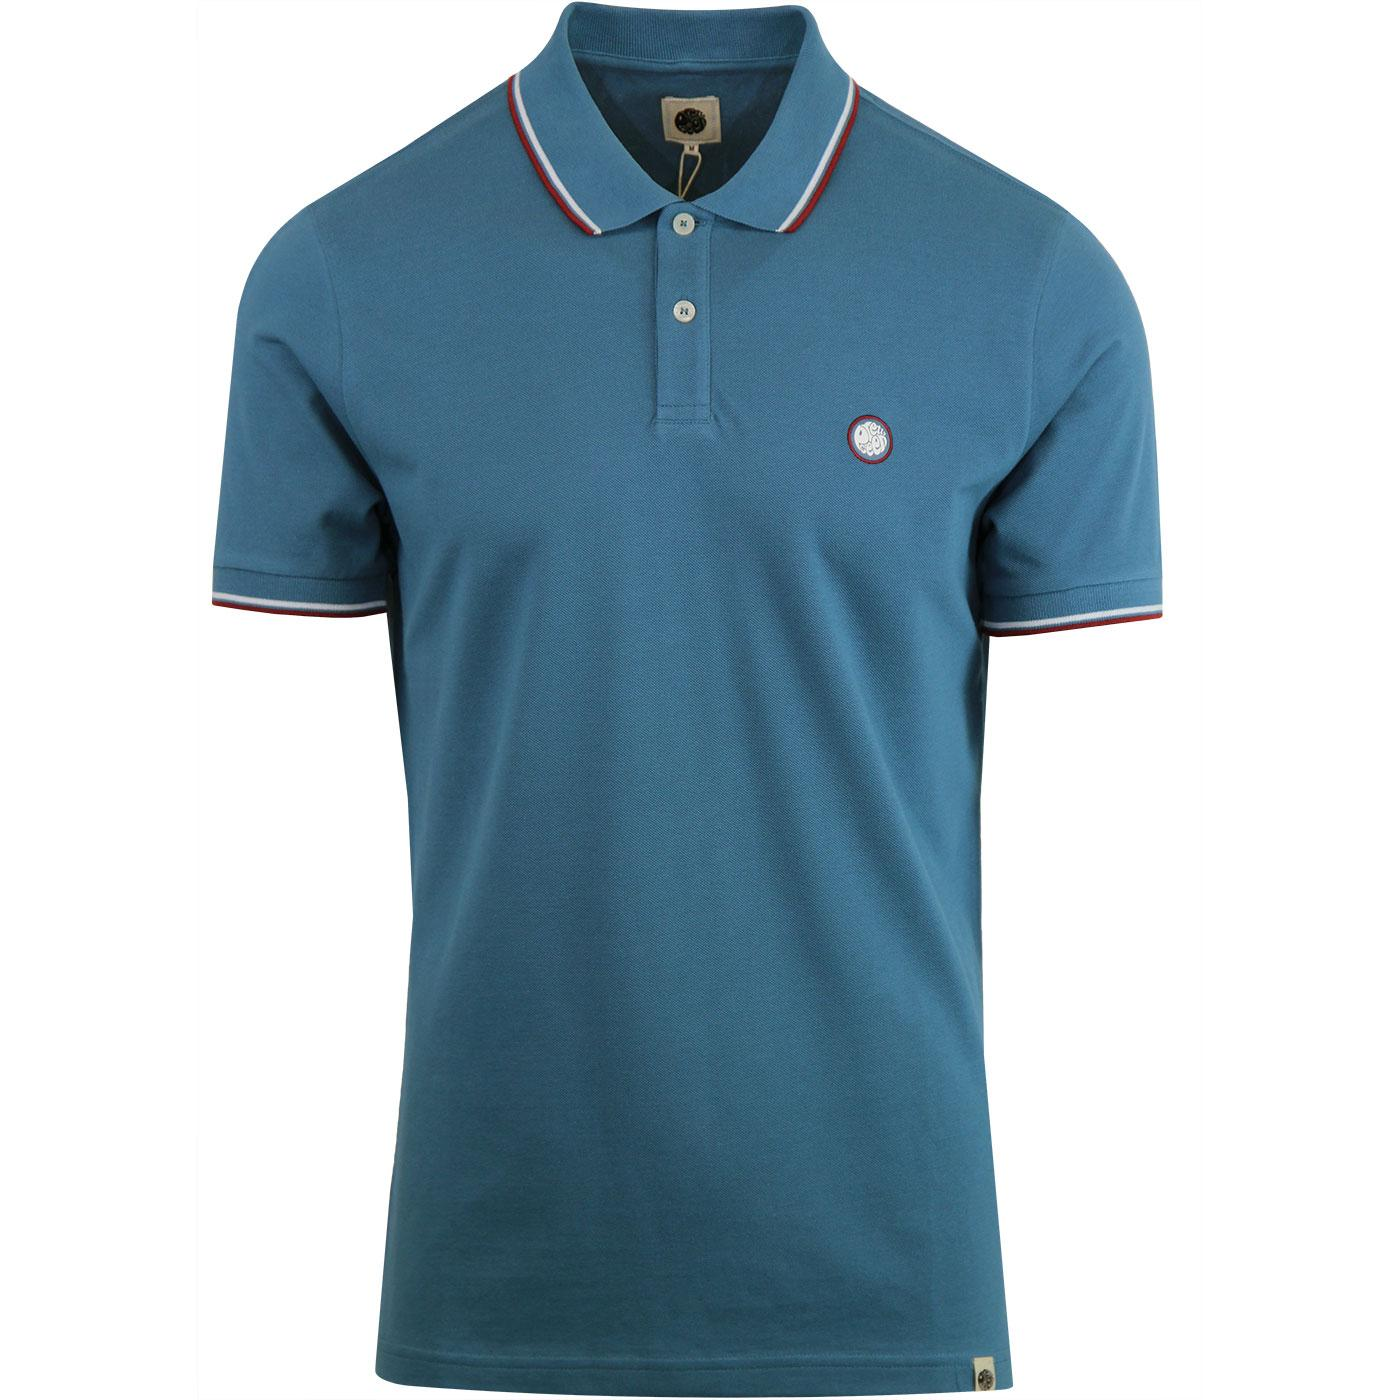 PRETTY GREEN Mod Twin Tipped Pique Polo - Blue